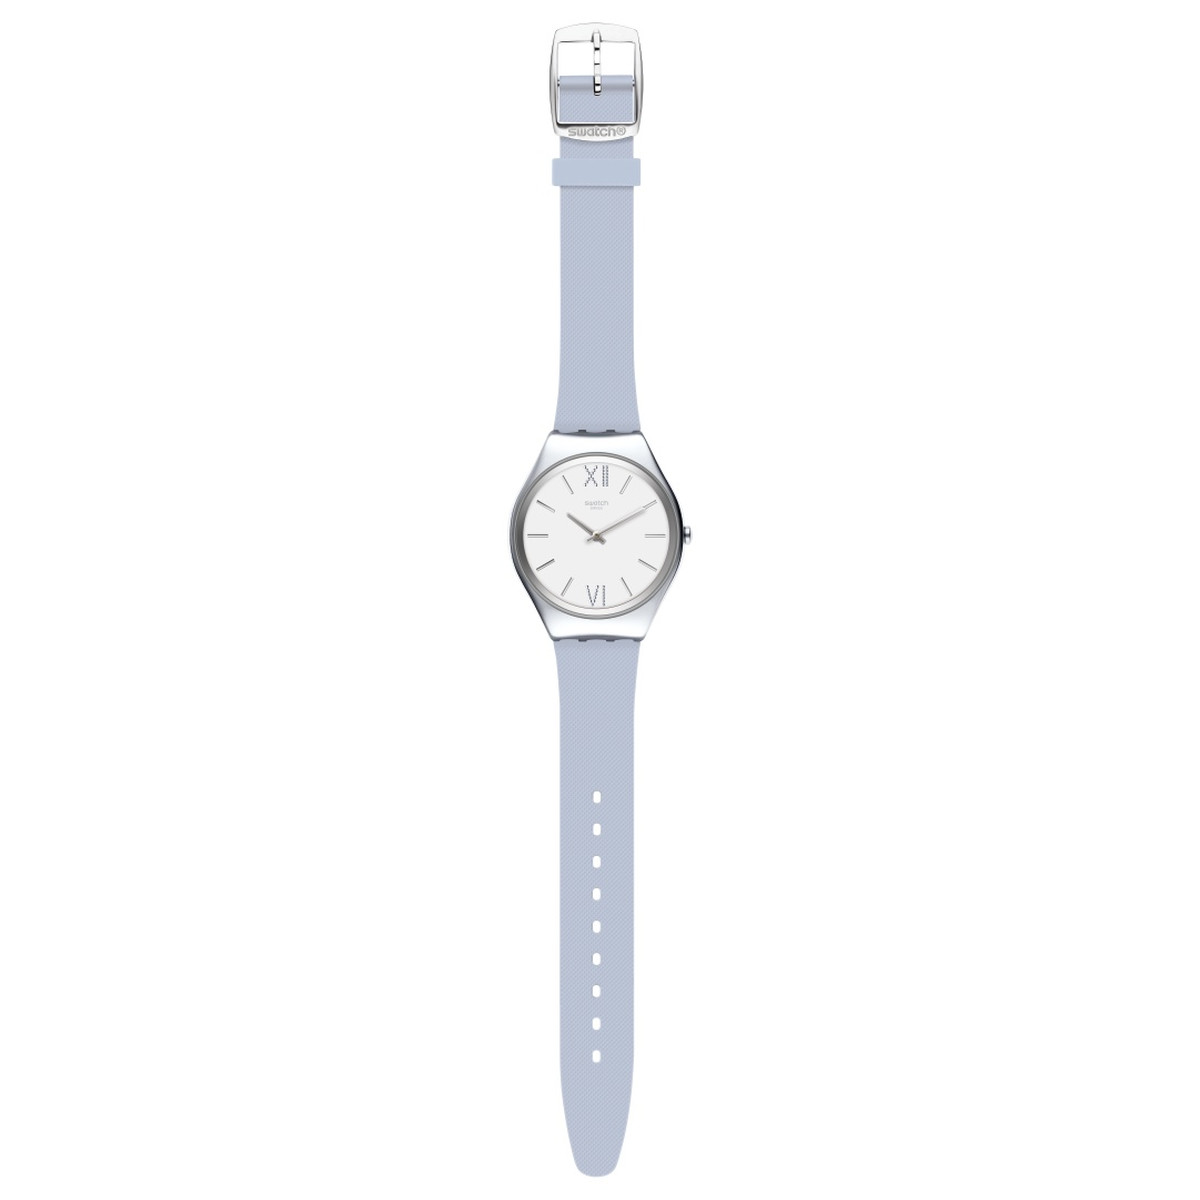 Montre SWATCH SKIN RONY Bracelet Silicone - vue VD1